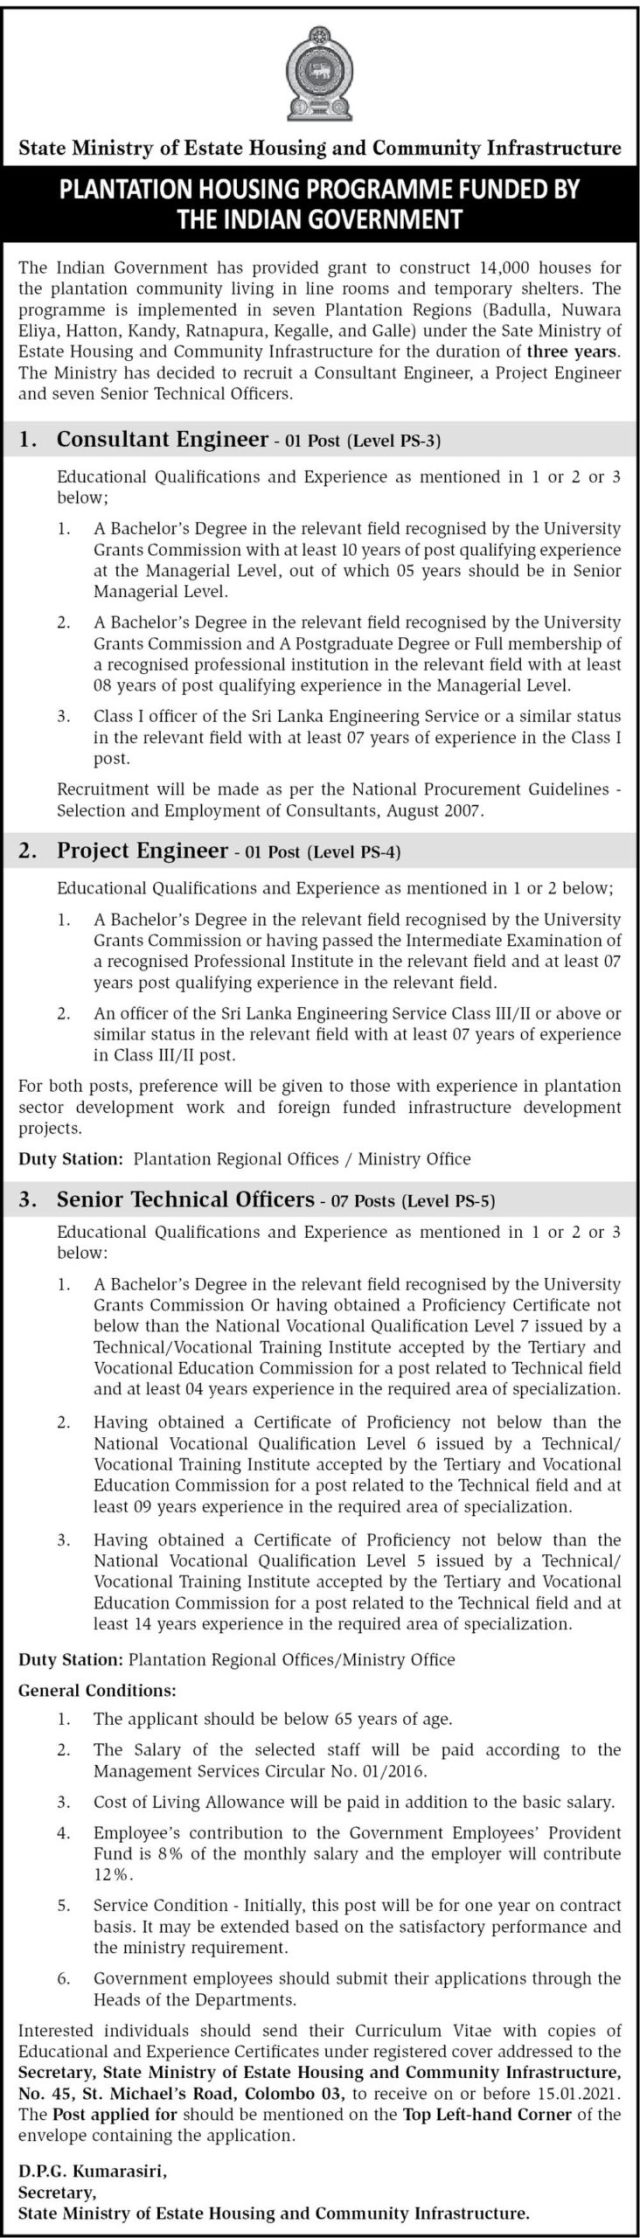 Consultant Engineer, Project Engineer, Senior Technical Officer